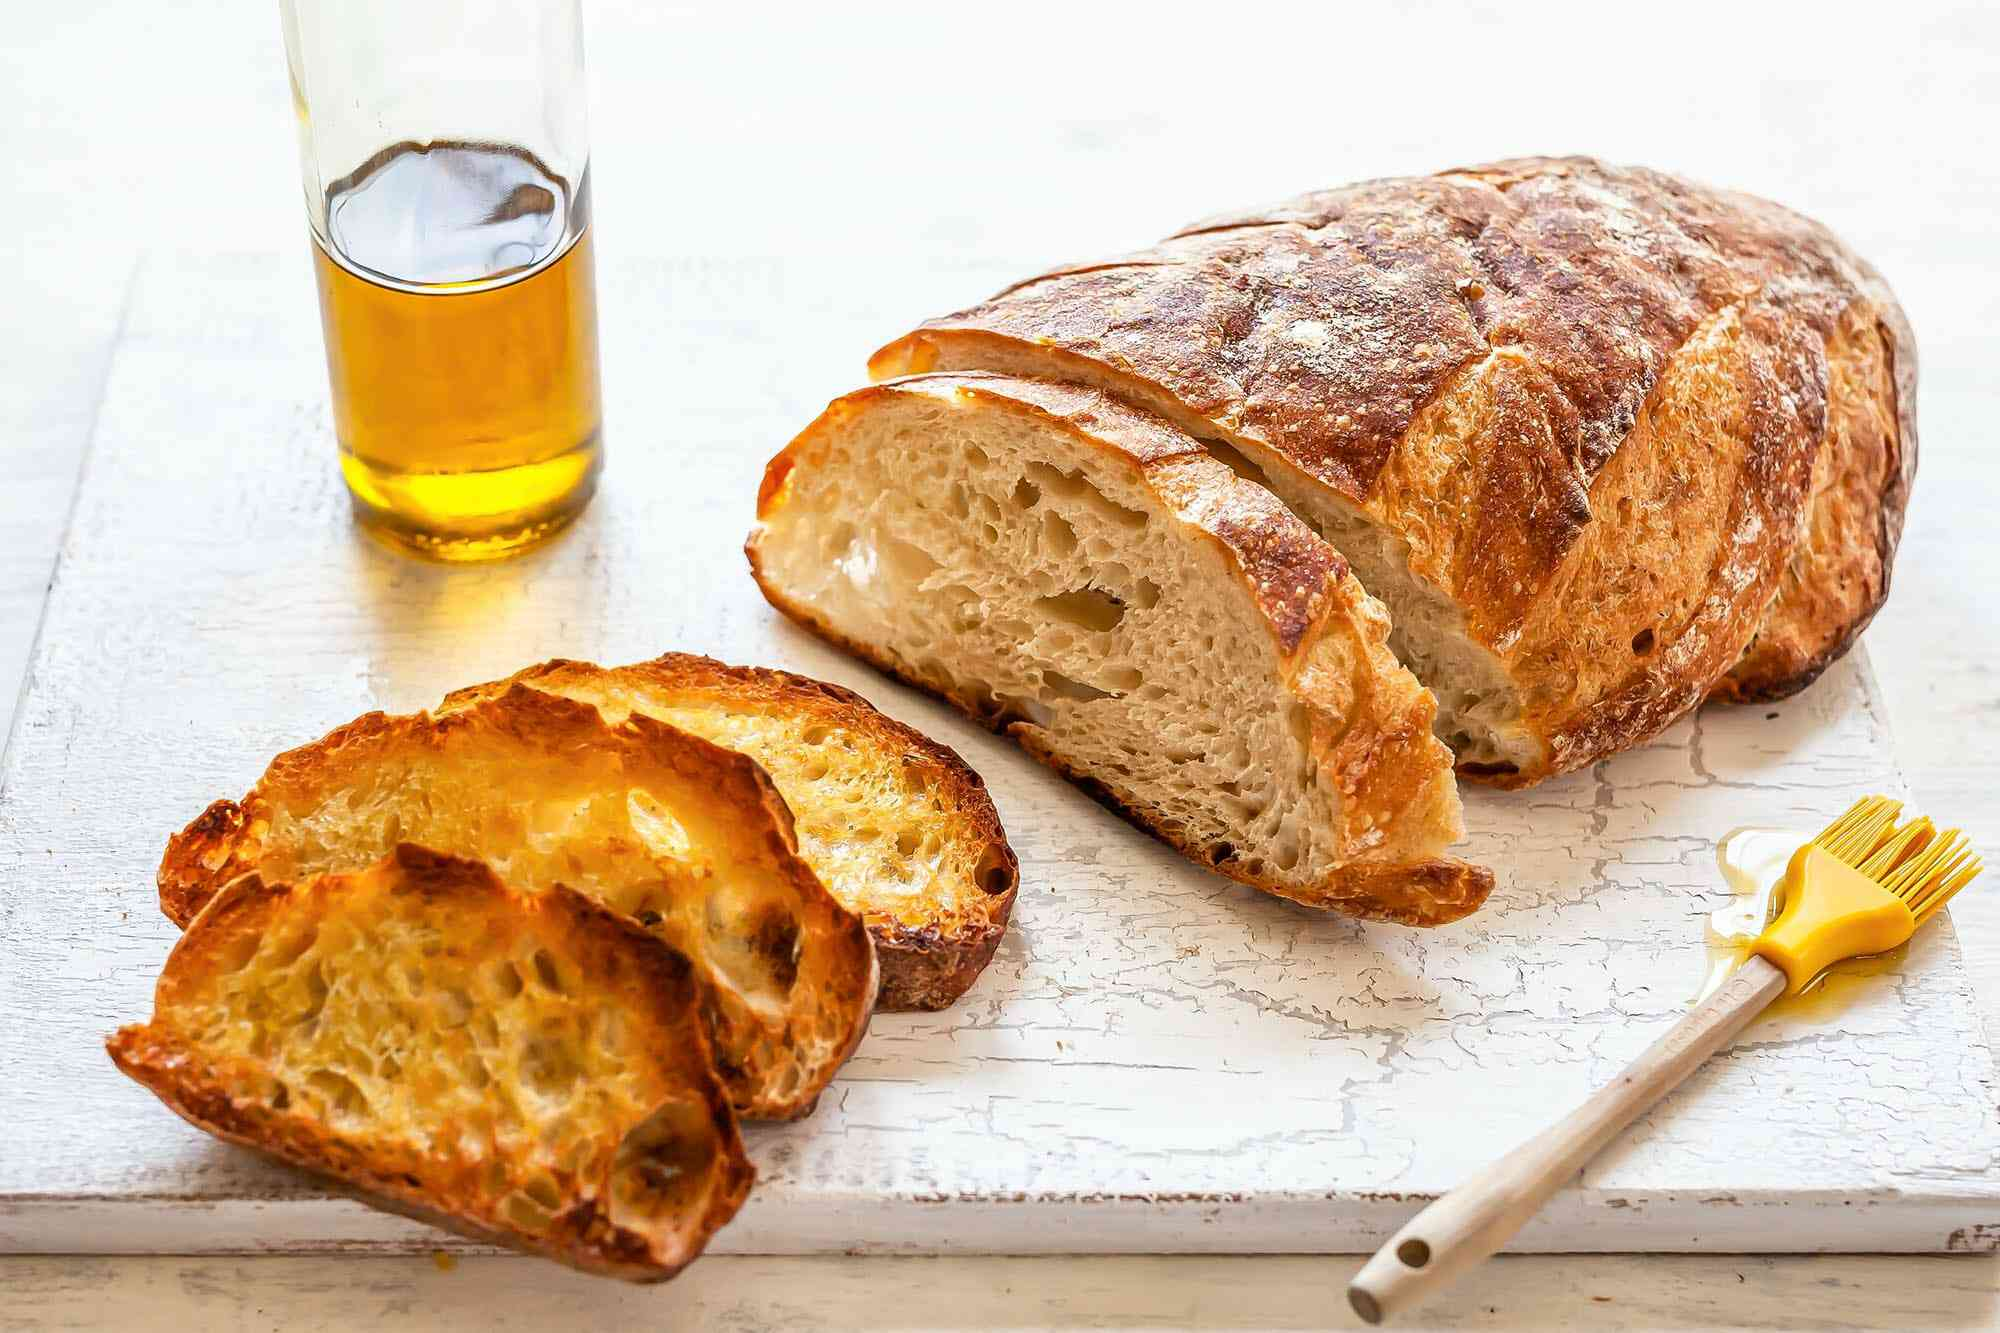 Sliced bread on a wooden board, a pastry brush, and a glass of olive oil. The first couple slices of bread are toasted.